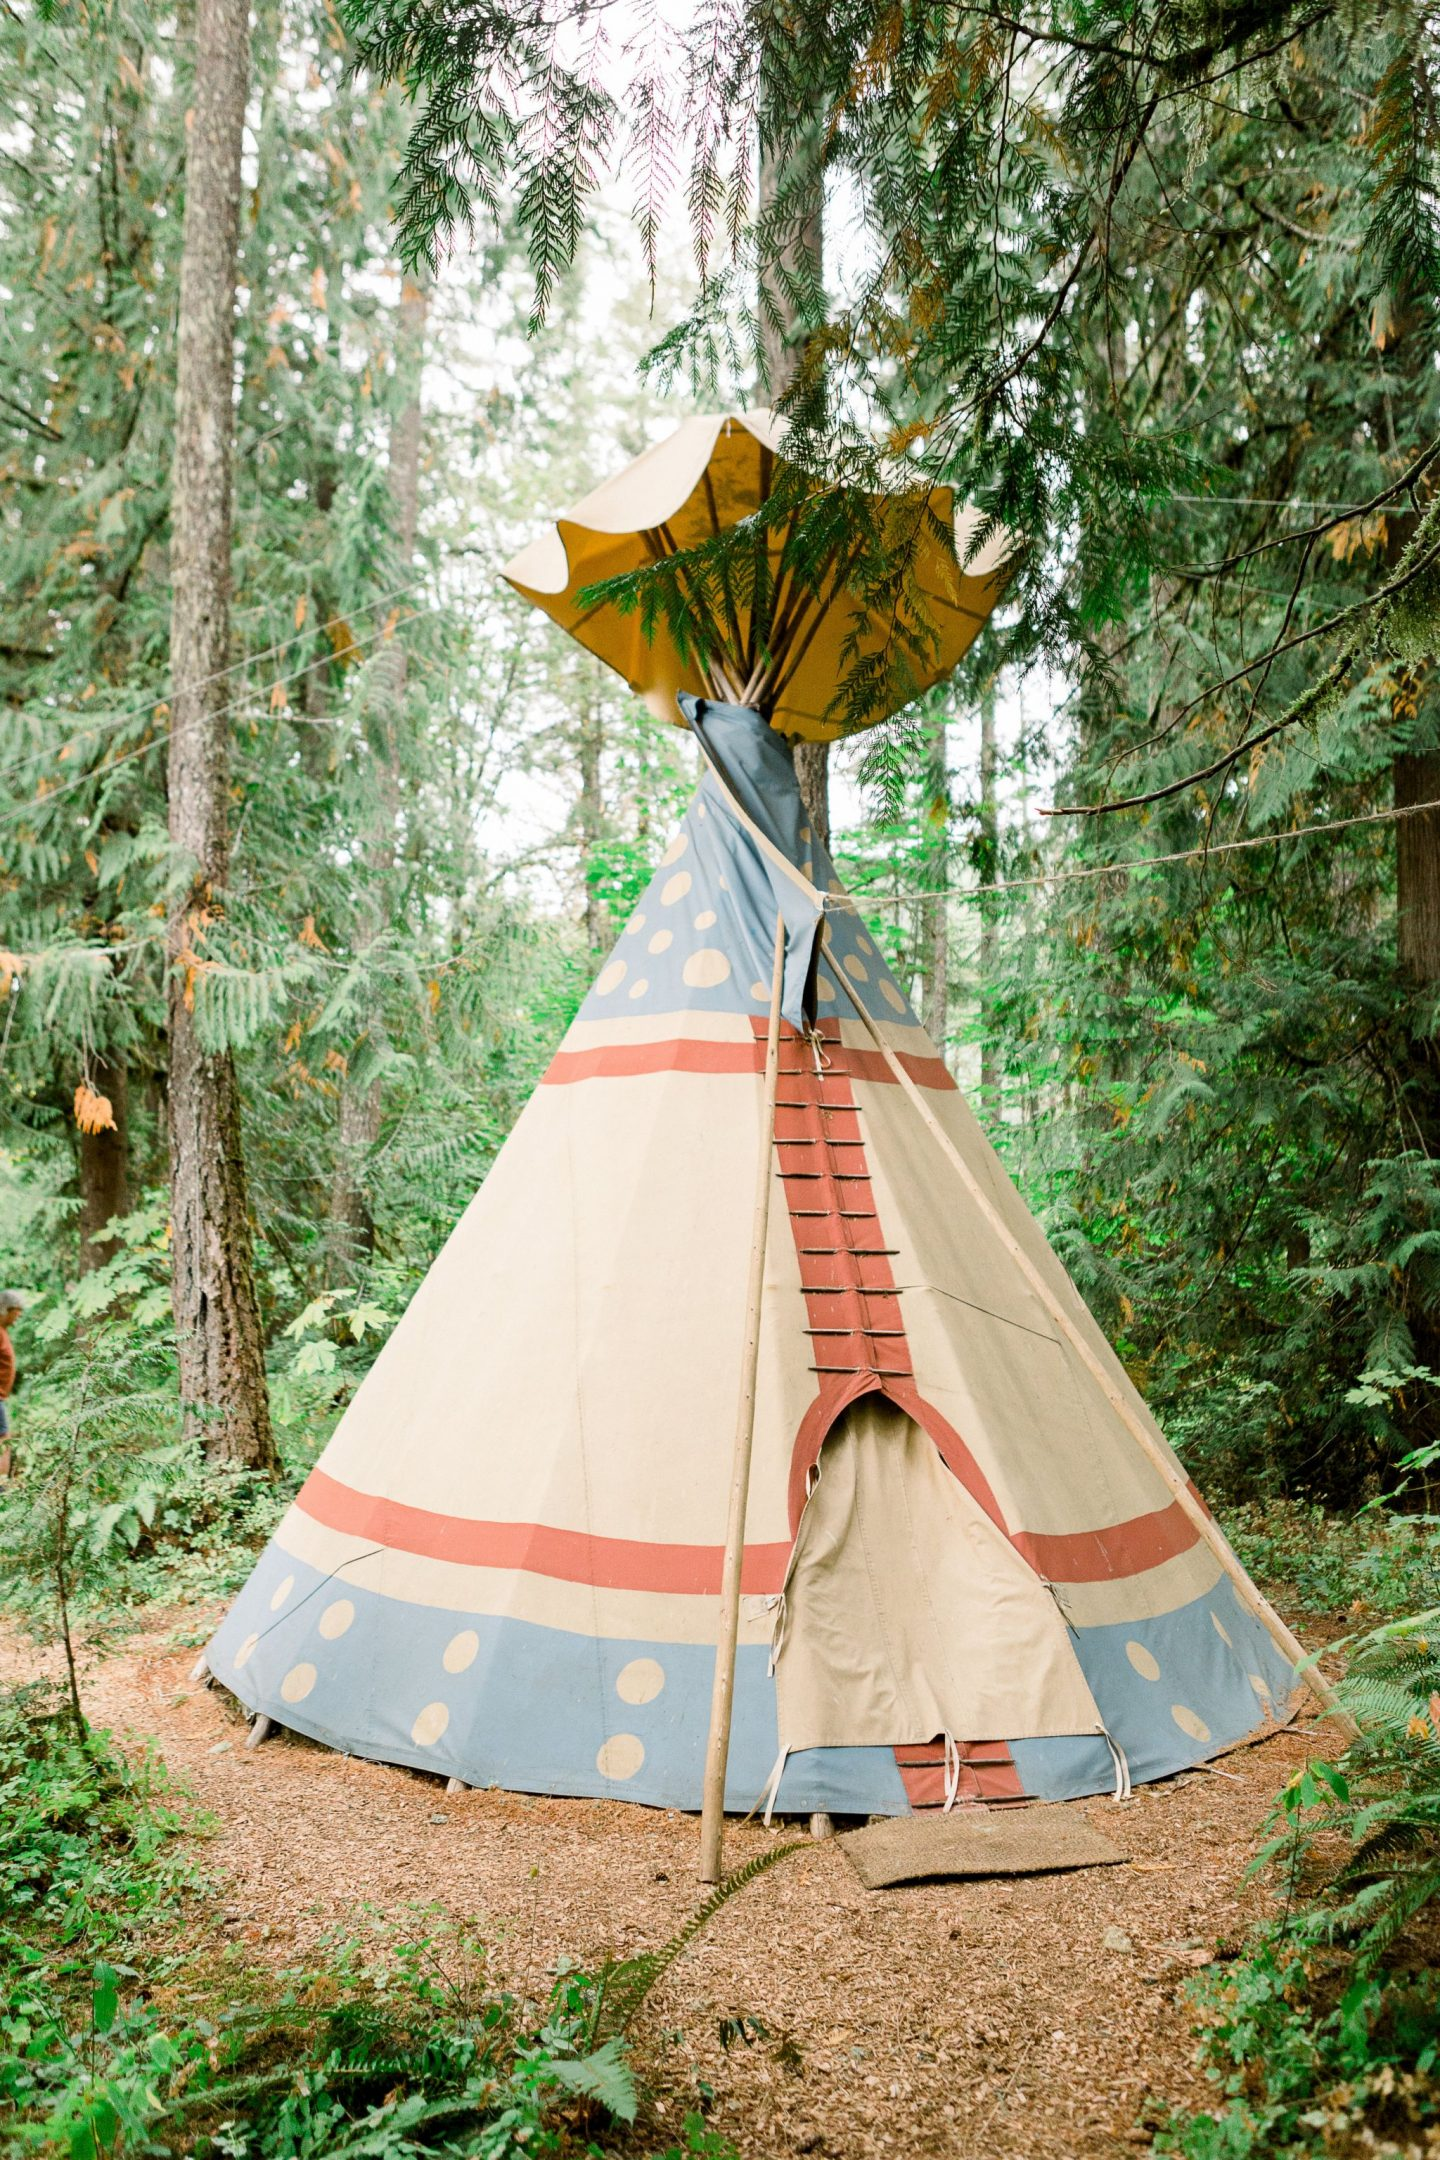 Willamette Valley Glamping – vintage camper trailer park – vintage airstream trailer – vintage camper rentals – glamping Oregon wine country – Willamette valley itinerary – where to stay in Willamette Valley – Willamette valley weekend – Willamette valley things to do – Vista Balloons – Willamette valley tourism – best things to do in Oregon wine country – planning a trip to Willamette Valley